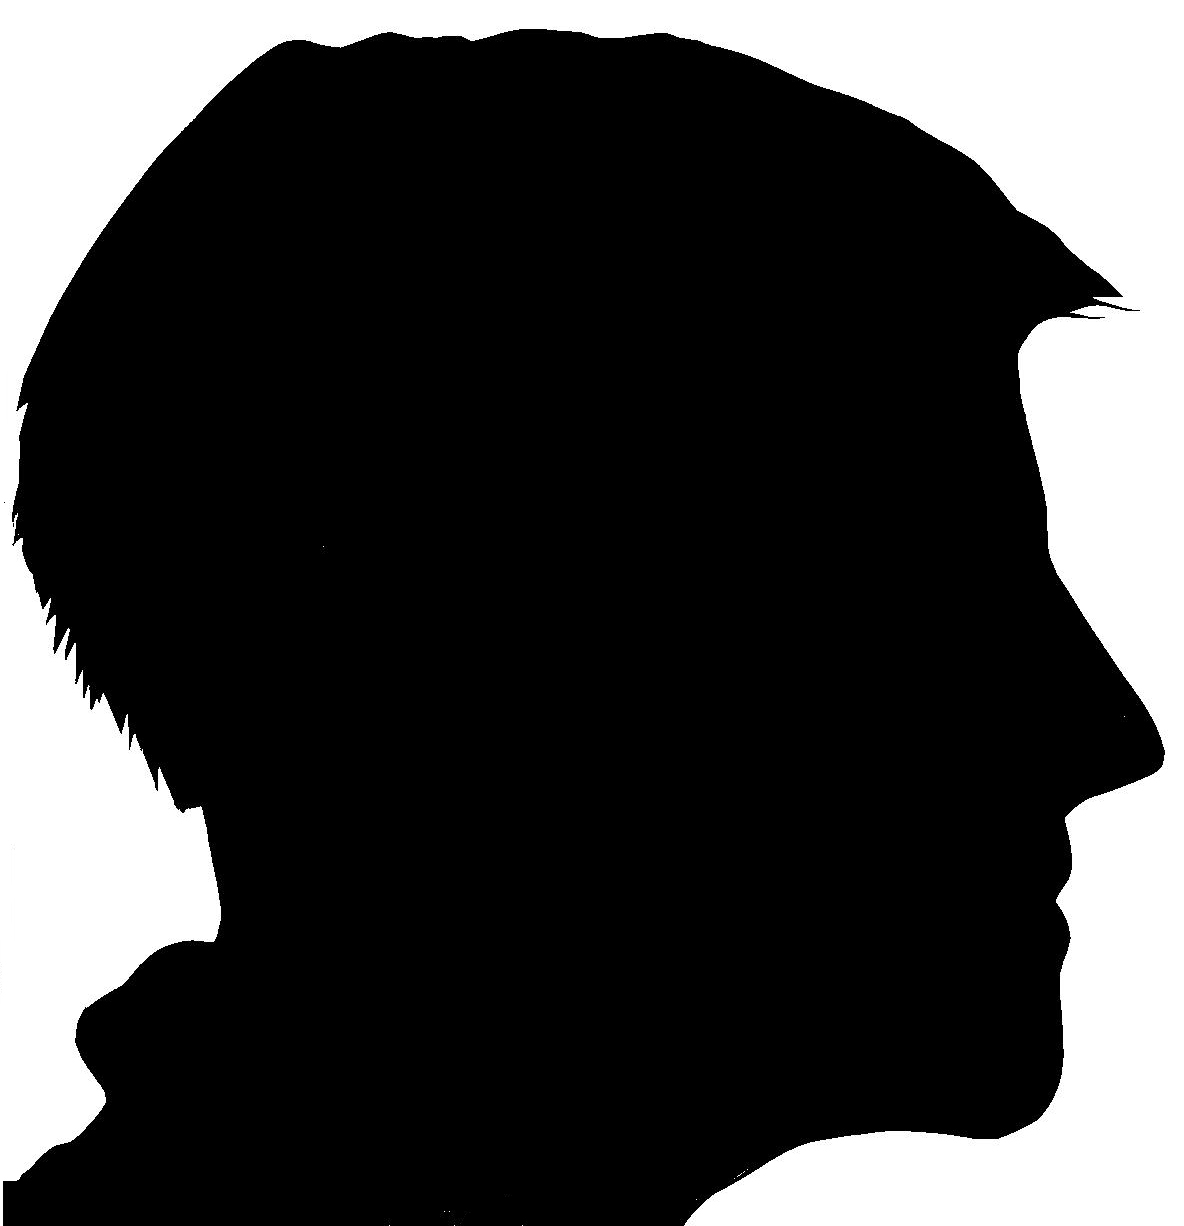 11 side profile head outline free cliparts that you can download to ...   1184 x 1226 jpeg 79kB